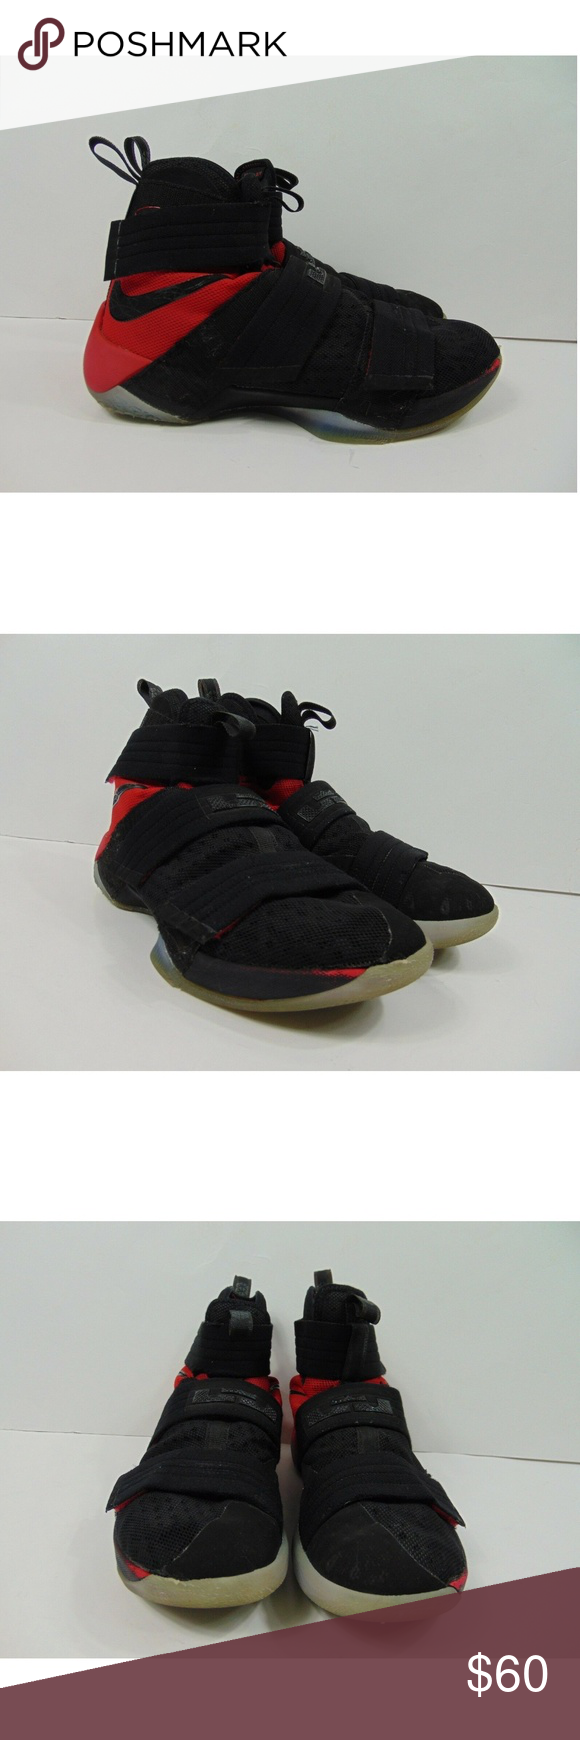 4922e64ab5fe6 Nike LeBron Soldier 10 SFG Shoes Black Red Men 9 Nike LeBron Soldier 10 SFG  Basketball Shoes Velcro 844378-006 Black Red Men 9 Gently pre owned  condition No ...